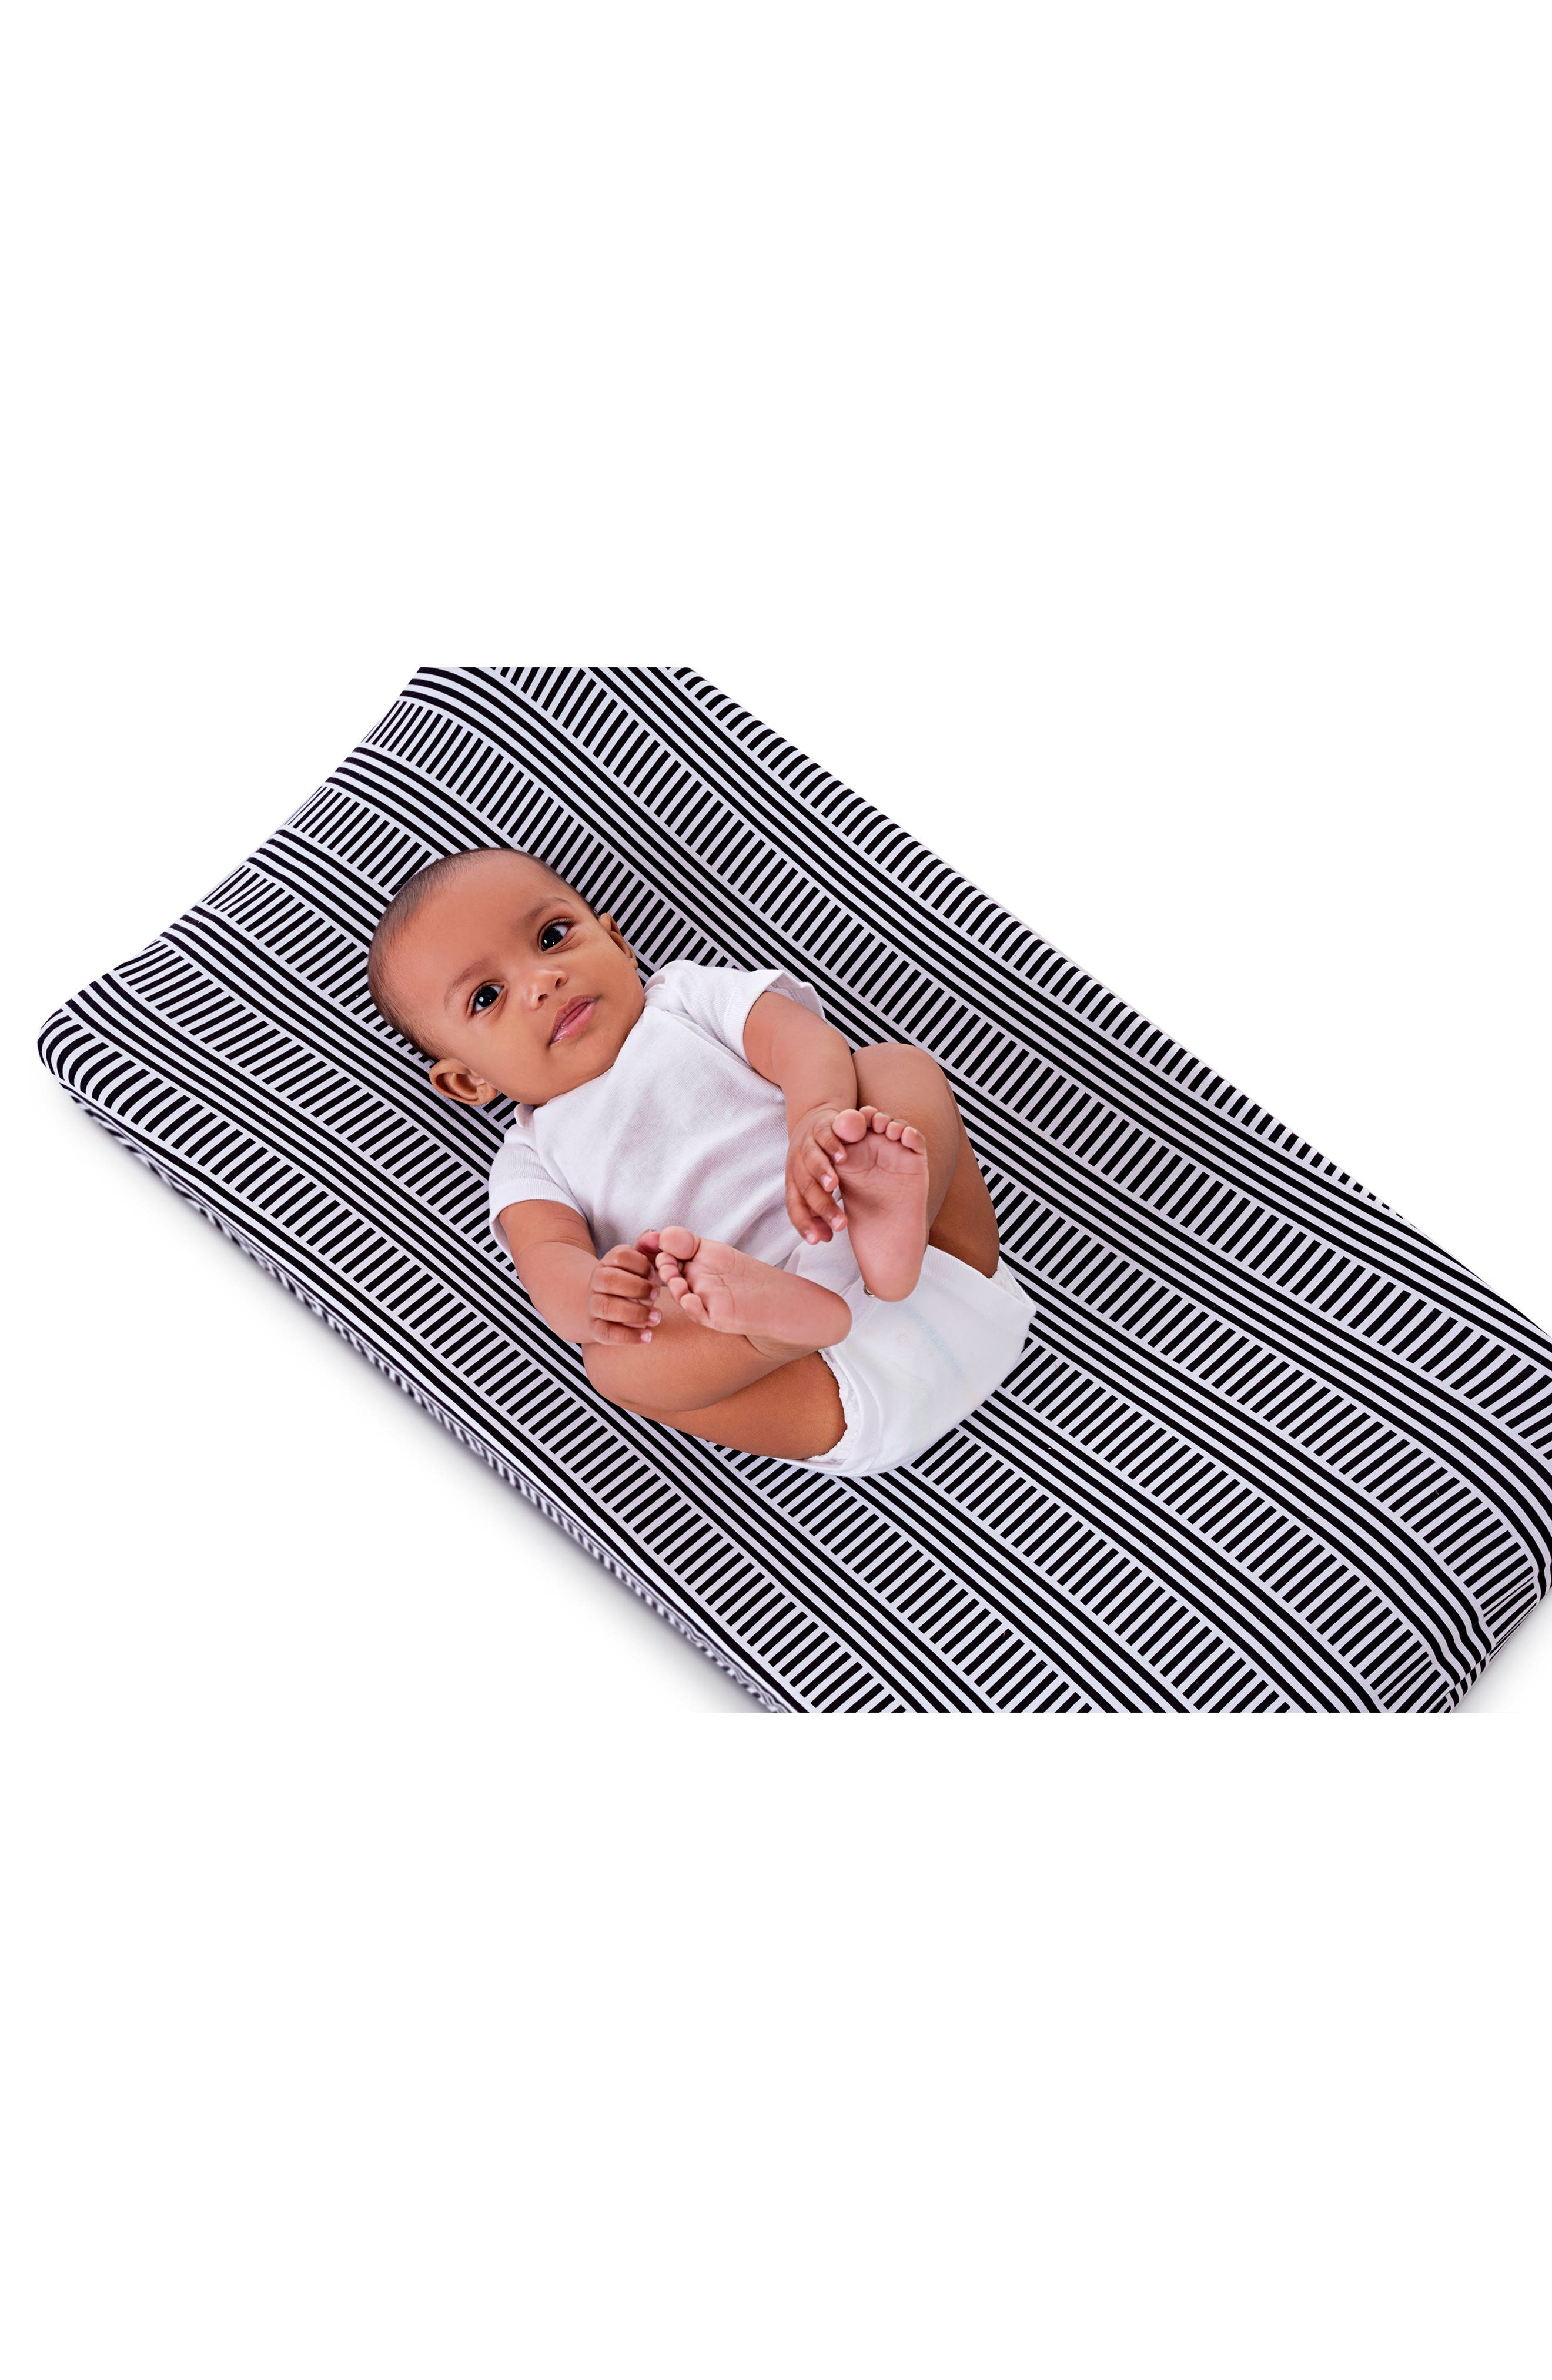 Black & White Print 2-Pack Changing Pad Covers,                             Alternate thumbnail 2, color,                             Black And White